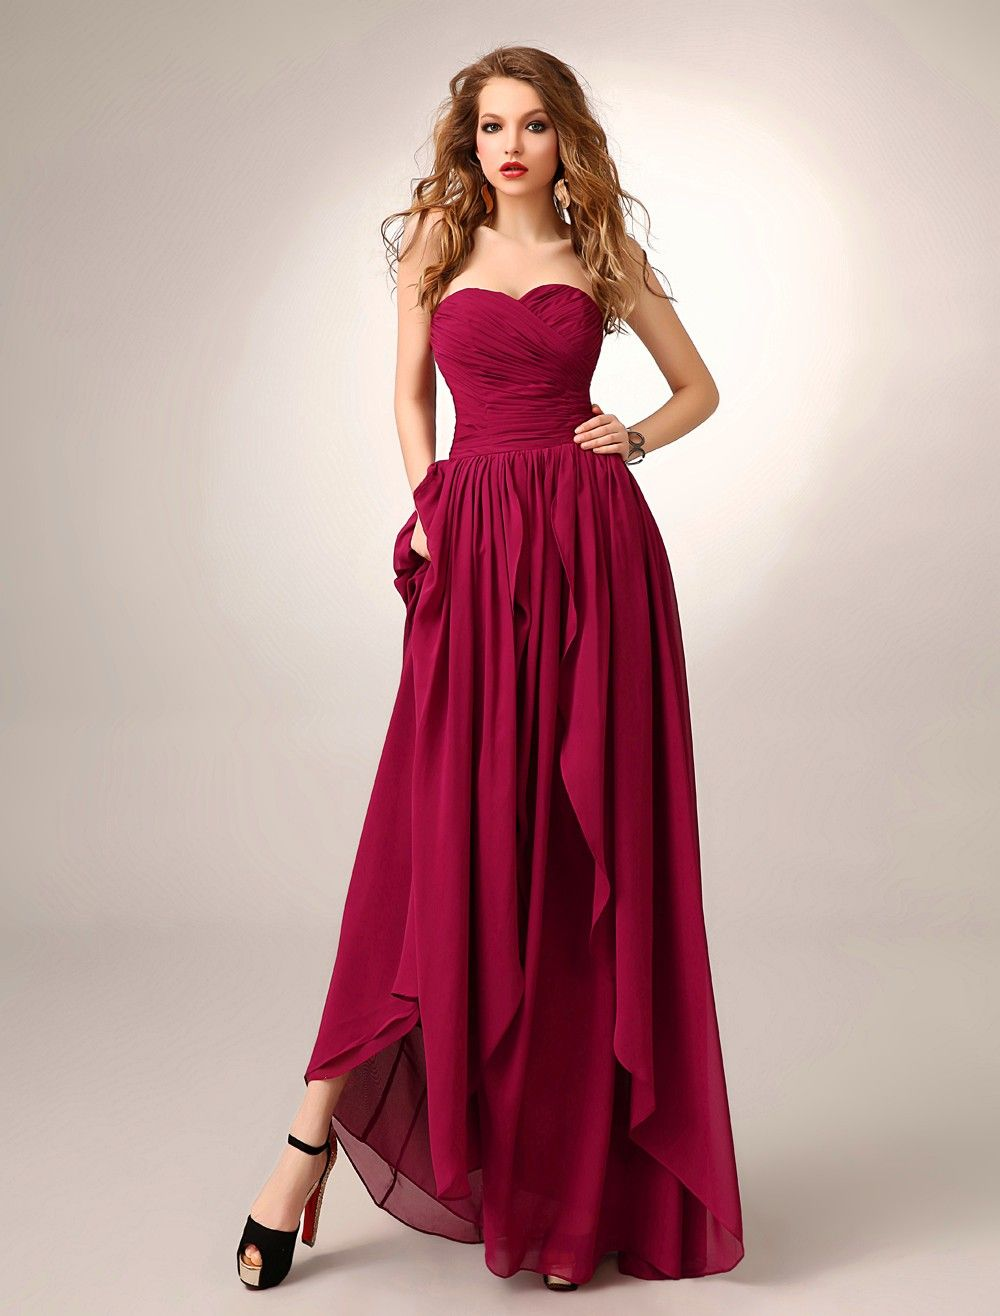 Grape draped sweetheart high low a line evening prom dress cwb